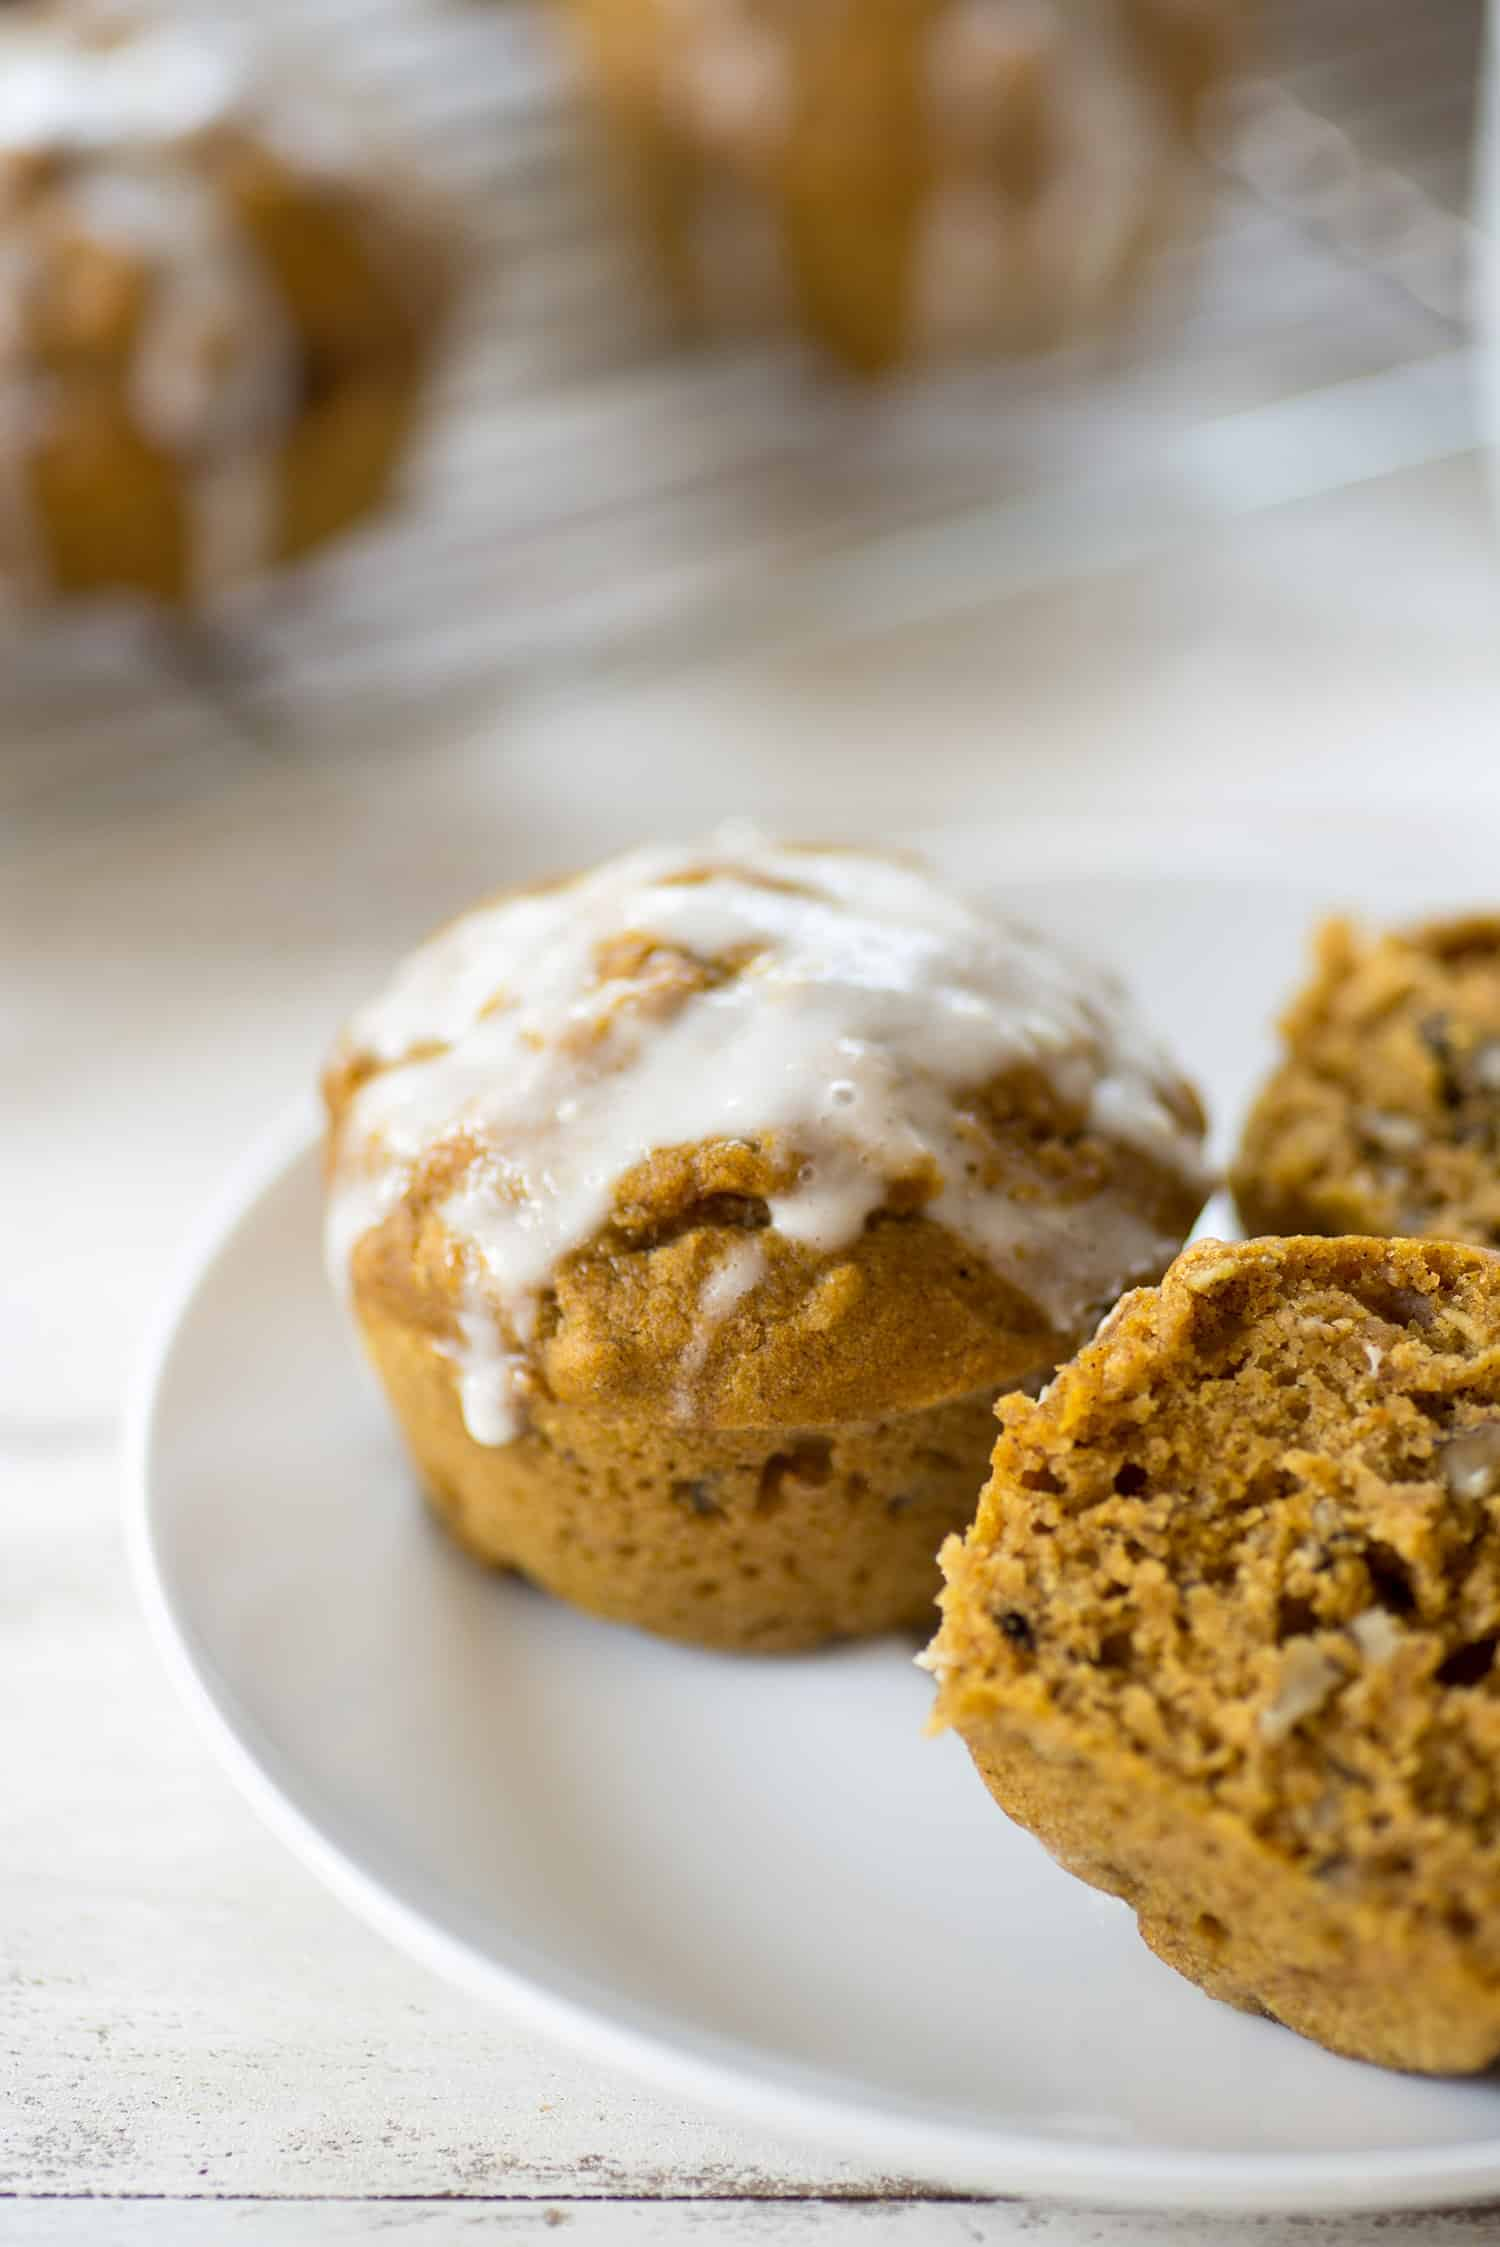 Pumpkin Muffins with Yogurt Glaze! These healthy, fiber-rich muffins are perfect for Fall. Topped with a homemade yogurt glaze. So delicious, perfect for school lunches and afternoon snacks!